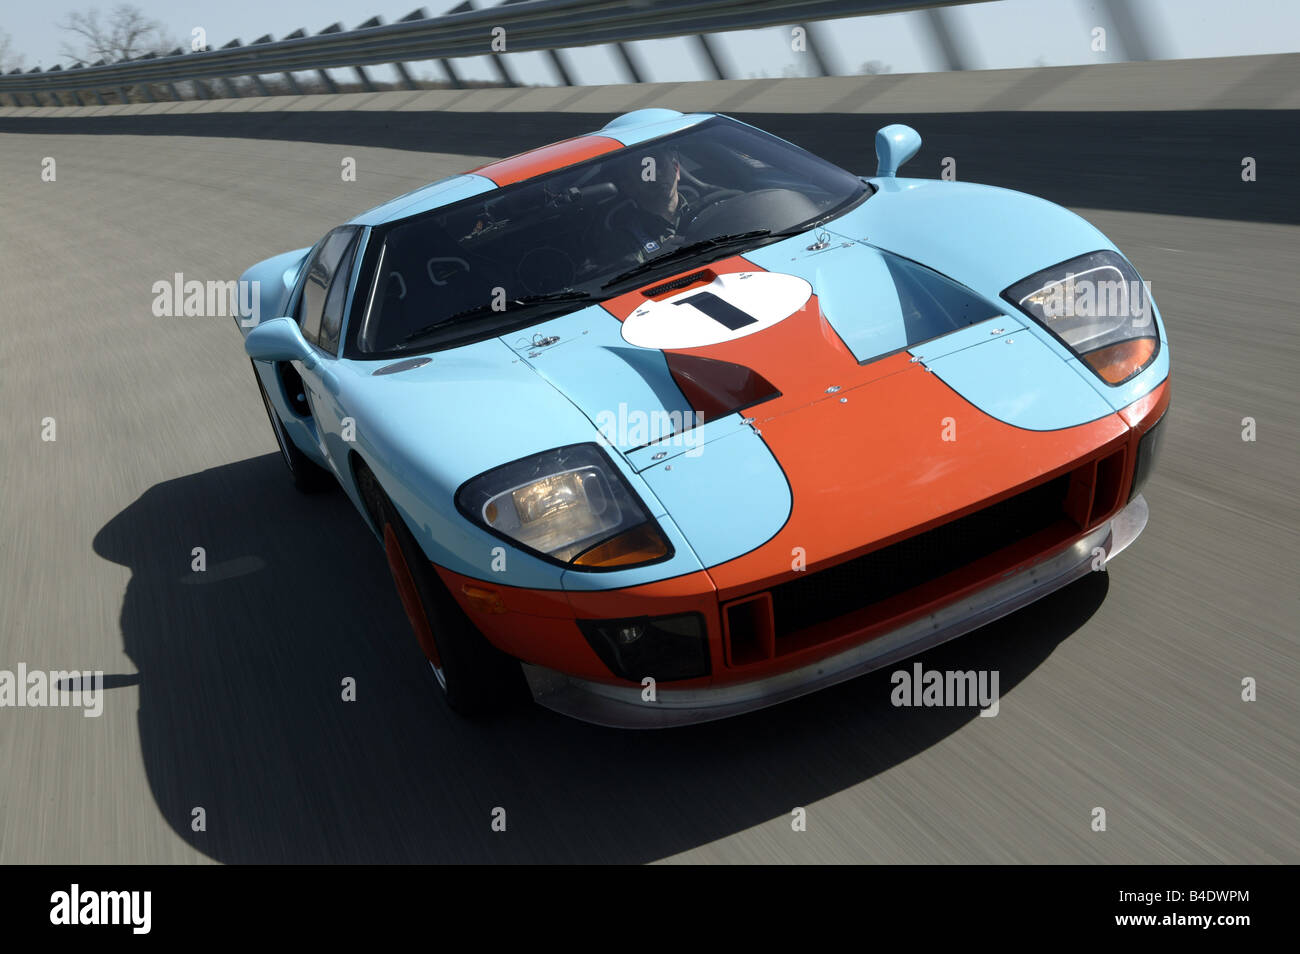 Car Ford Gt  Predotype Model Year  Blue Orange Roadster Coupe Coupe Driving Race Track Test Track Diagonal From